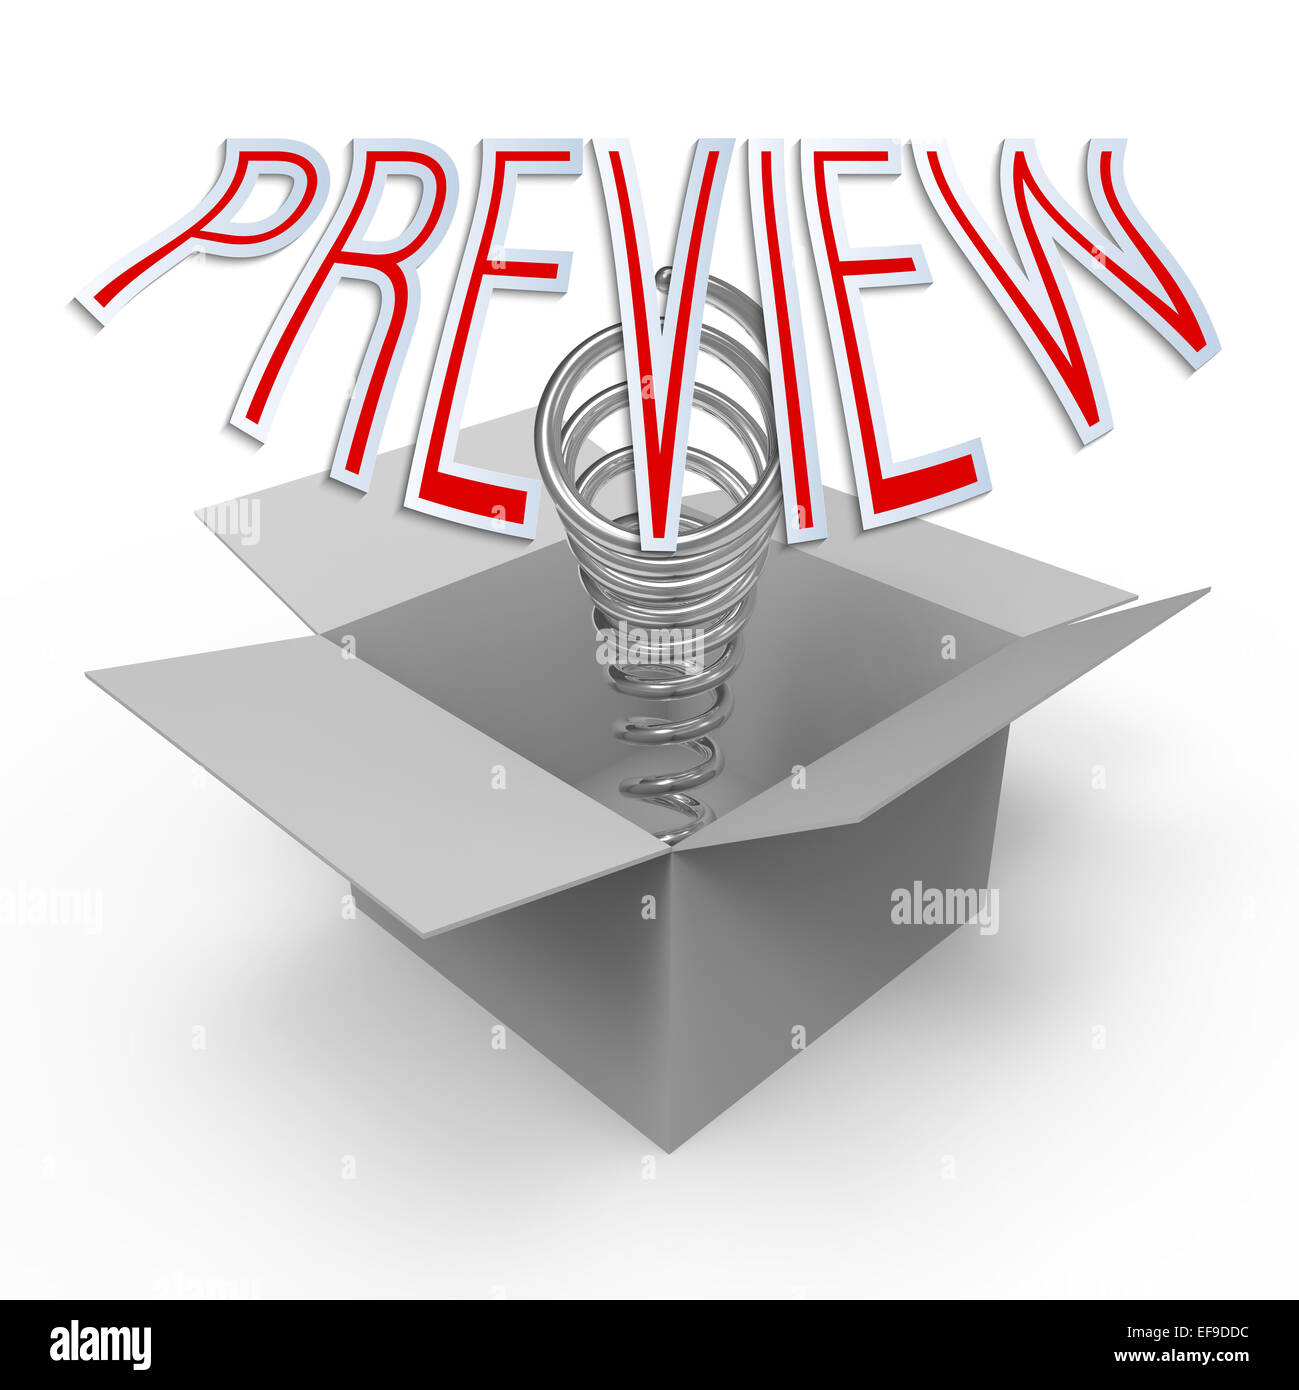 3d cardboard box with pop-up caption 'Preview'.  Concept of quick lookup, pre-premiere showing, think outside - Stock Image